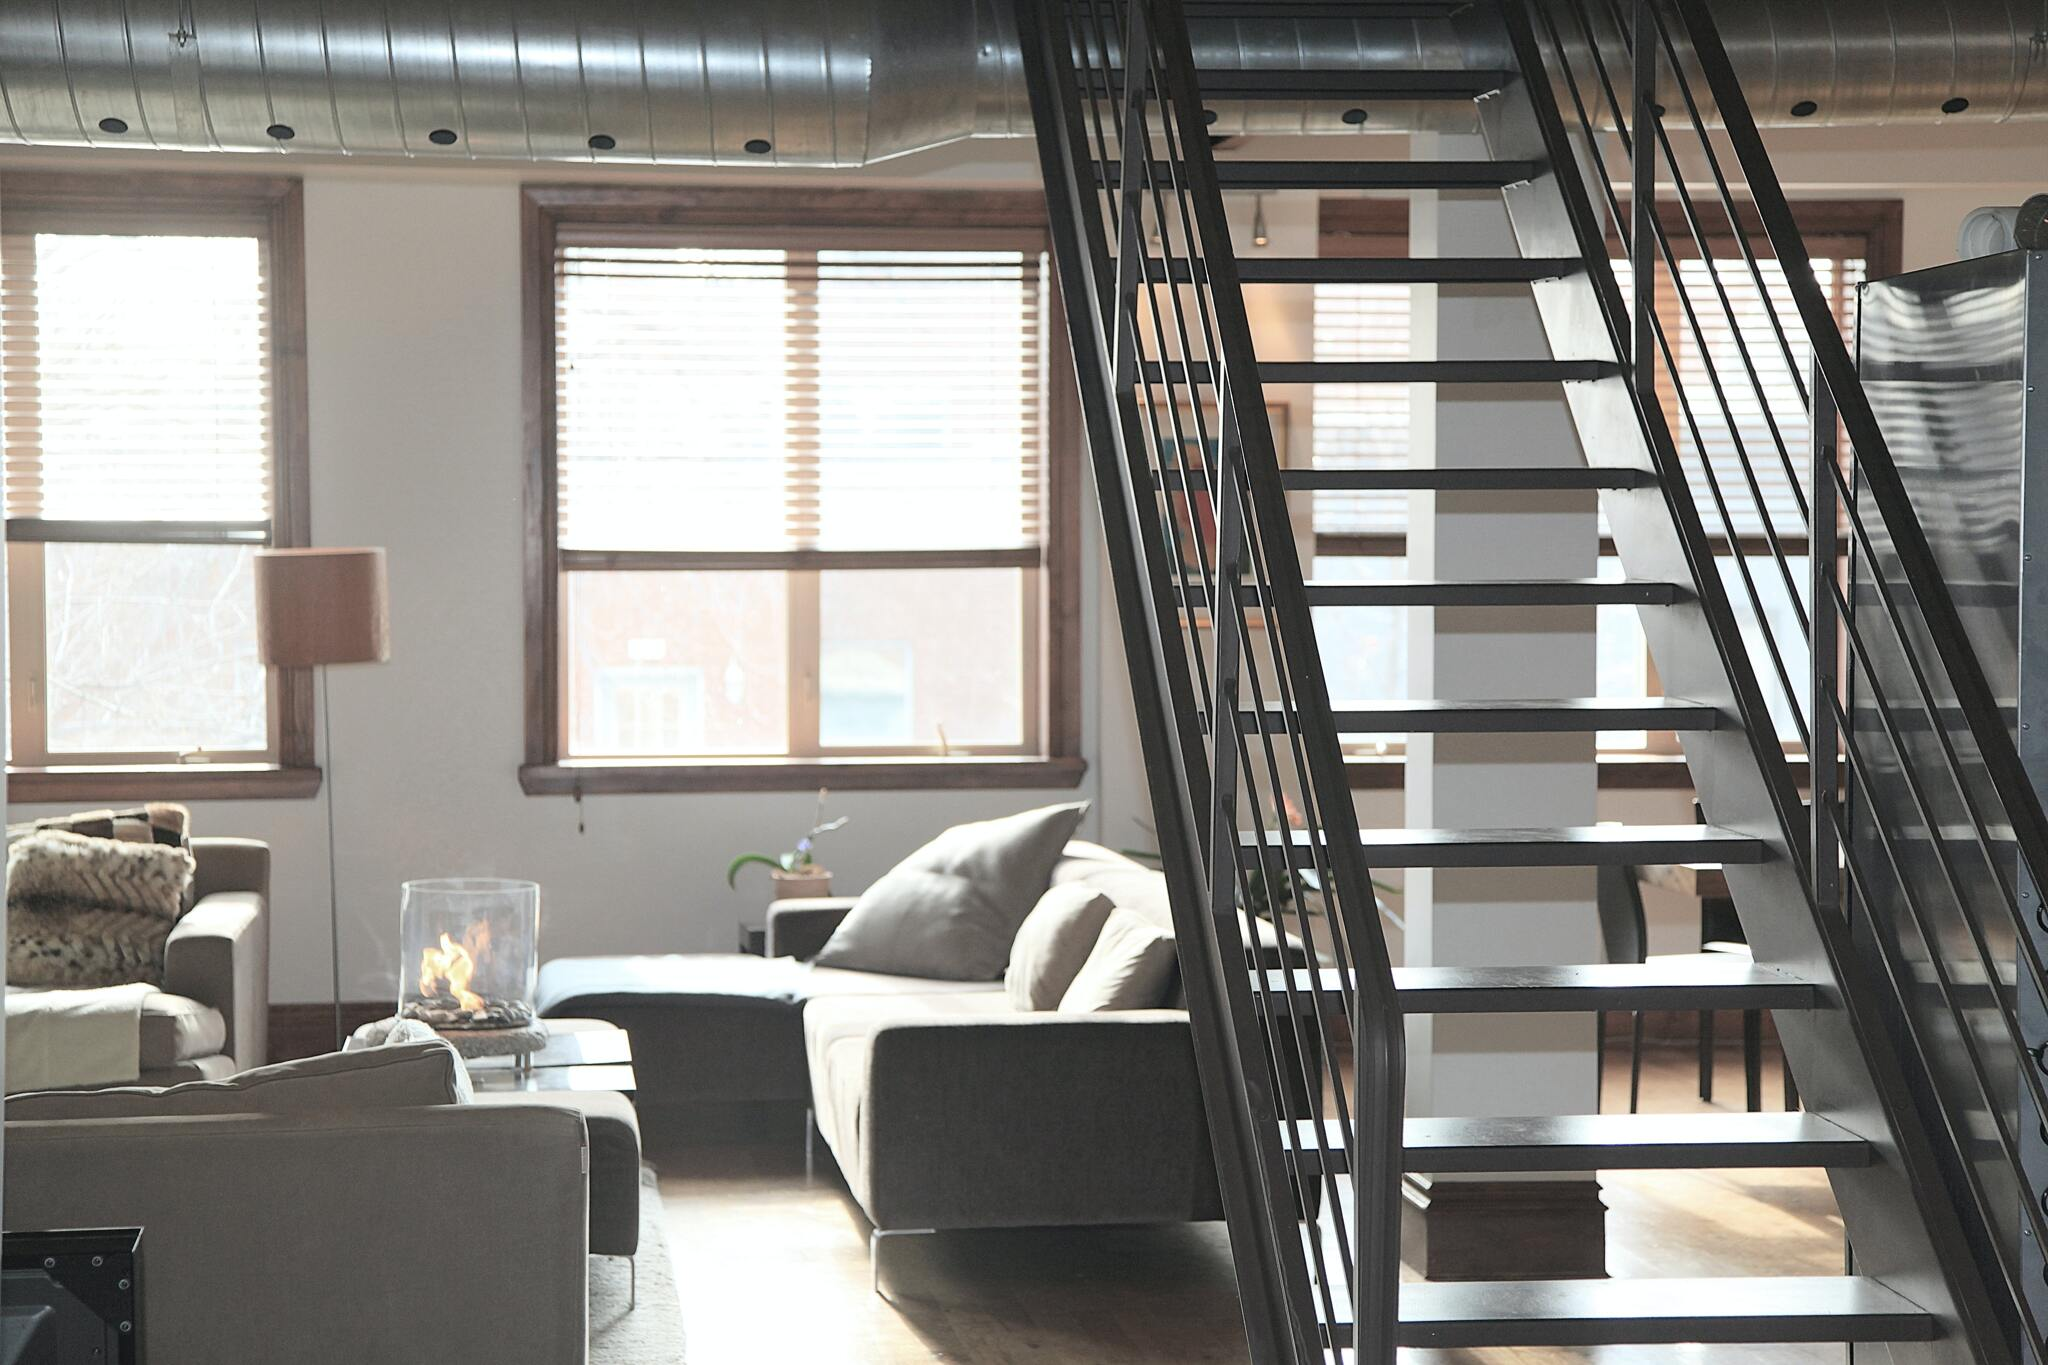 Stairs to a loft conversion in a flat